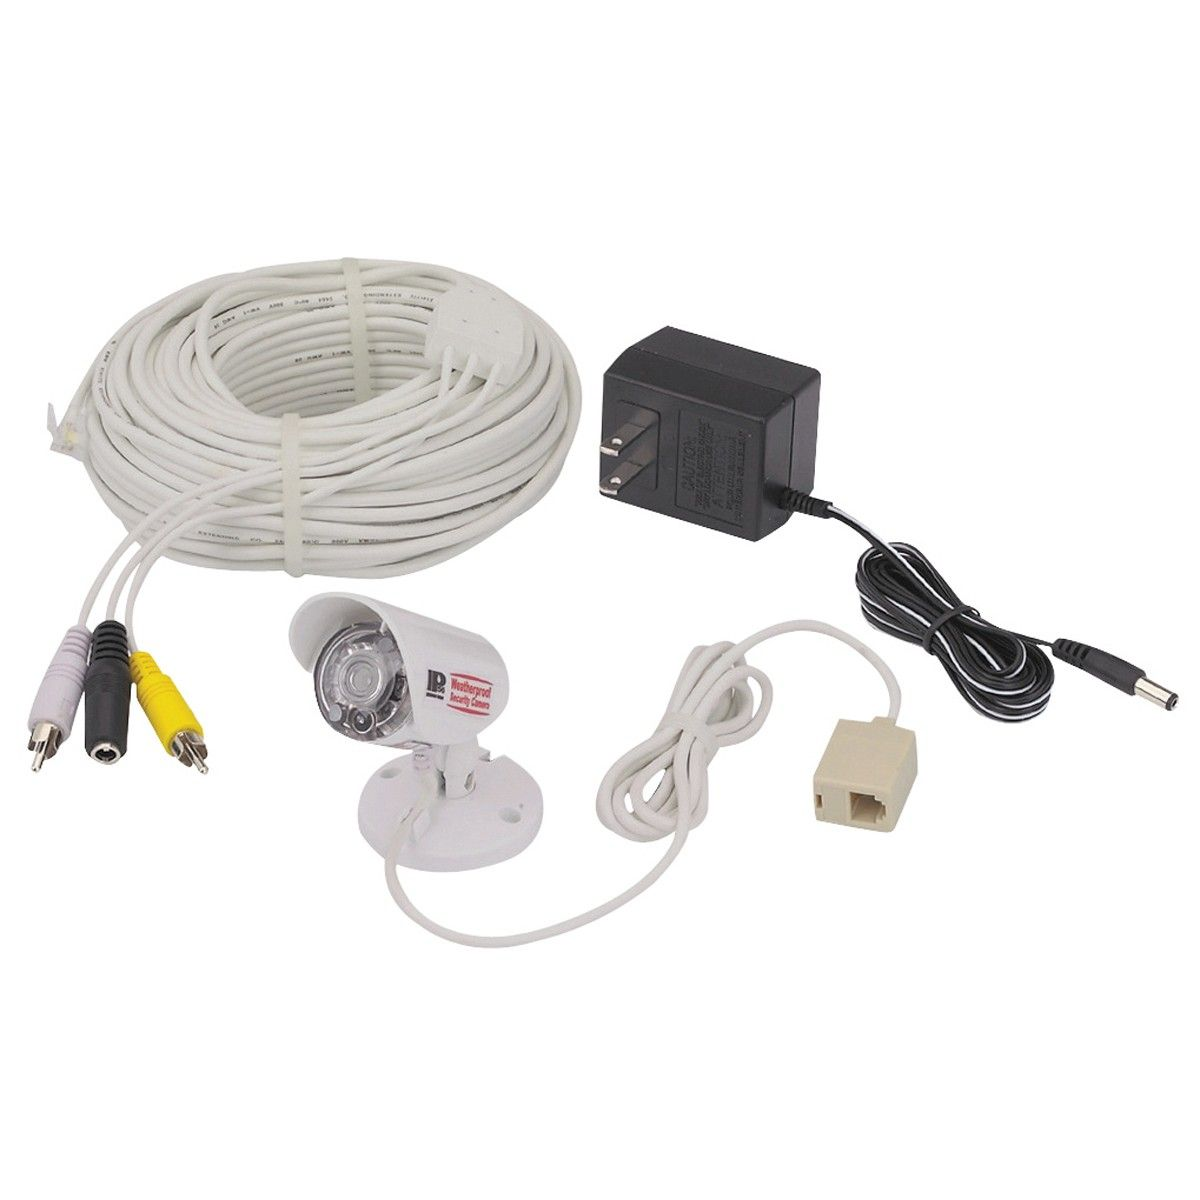 harbor freight security camera 47546 wiring diagram are you camera wiring schematic harbor freight security camera 47546 wiring diagram are you concerned about security of your home or office? well, our selections of hidden wireless